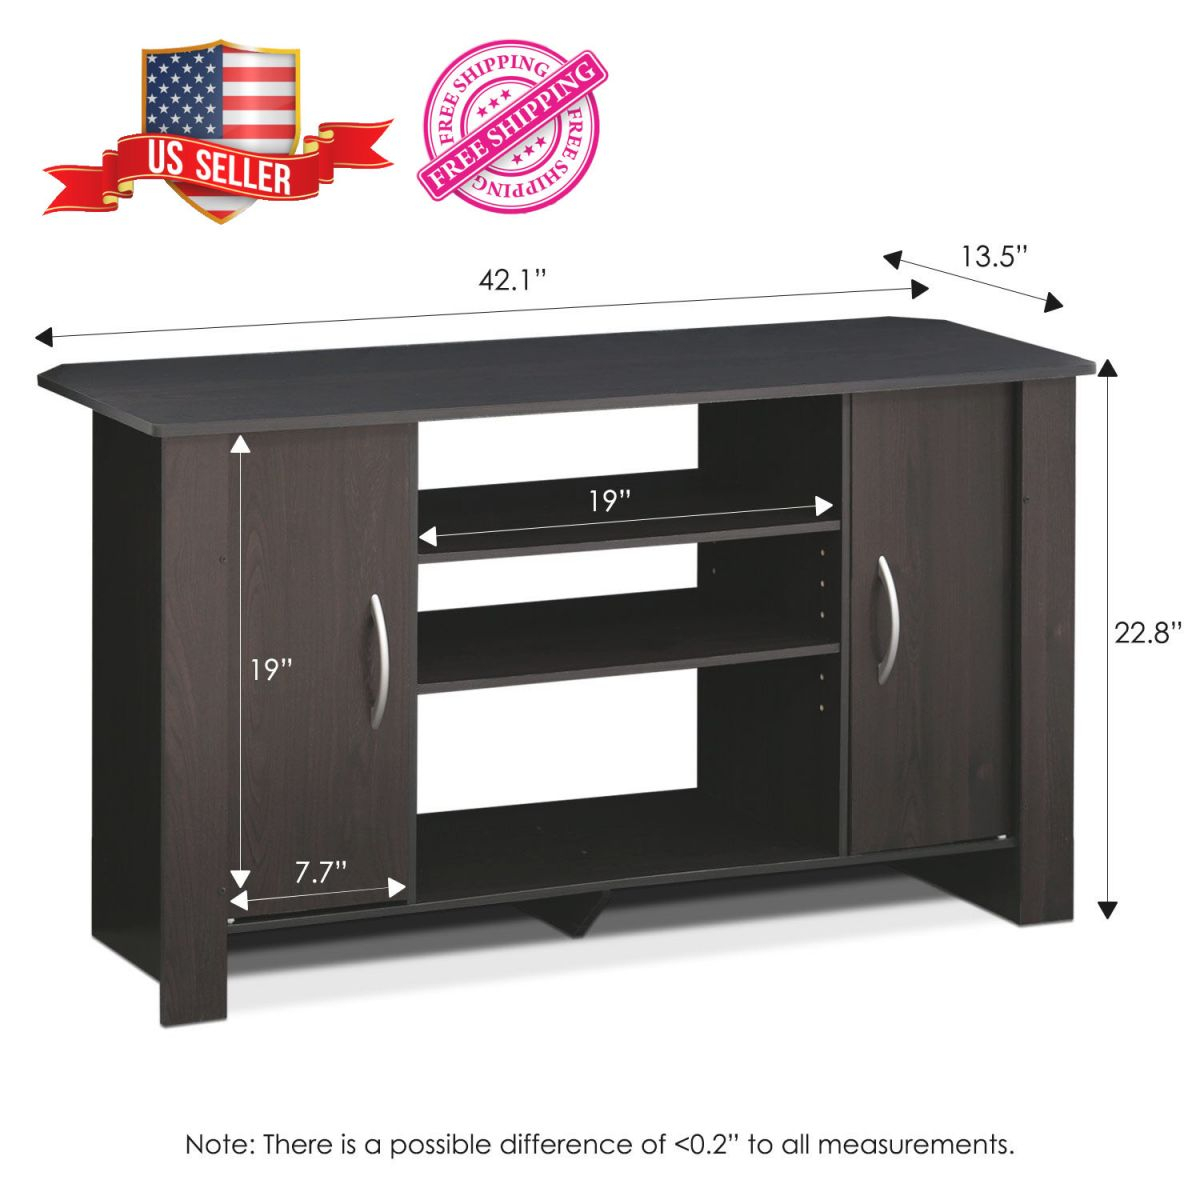 Details About Furinno Tv Stand Modern Stylish Entertainment Center Wood Unit Console Espresso throughout Stylish Tv Unit